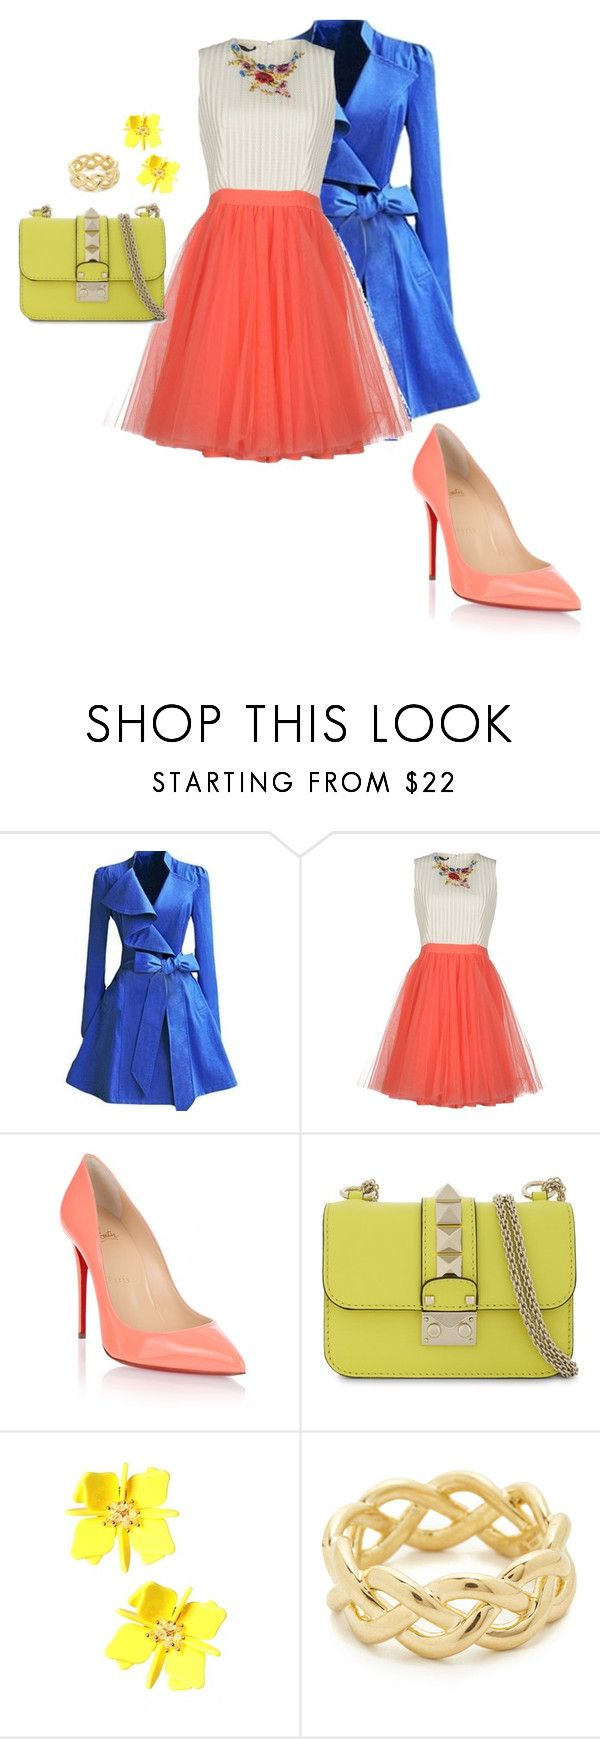 """ASCANIA"" by saretasareta on Polyvore featuring WithChic, Alex Vidal, Christian Louboutin, Valentino and Soave Oro"